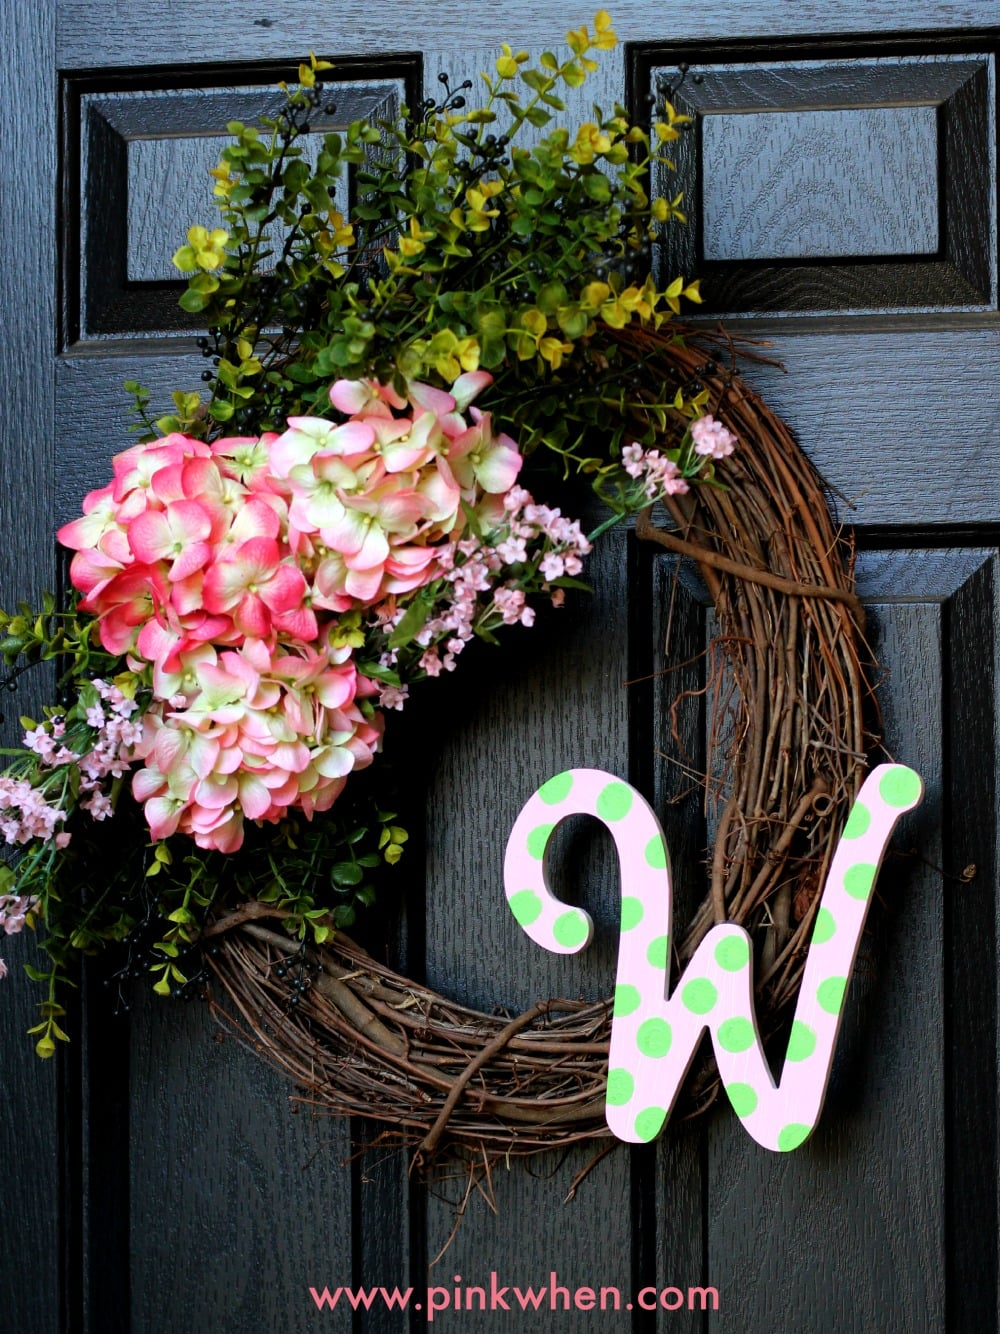 Spring Floral Outdoor Wreath Pinkwhen